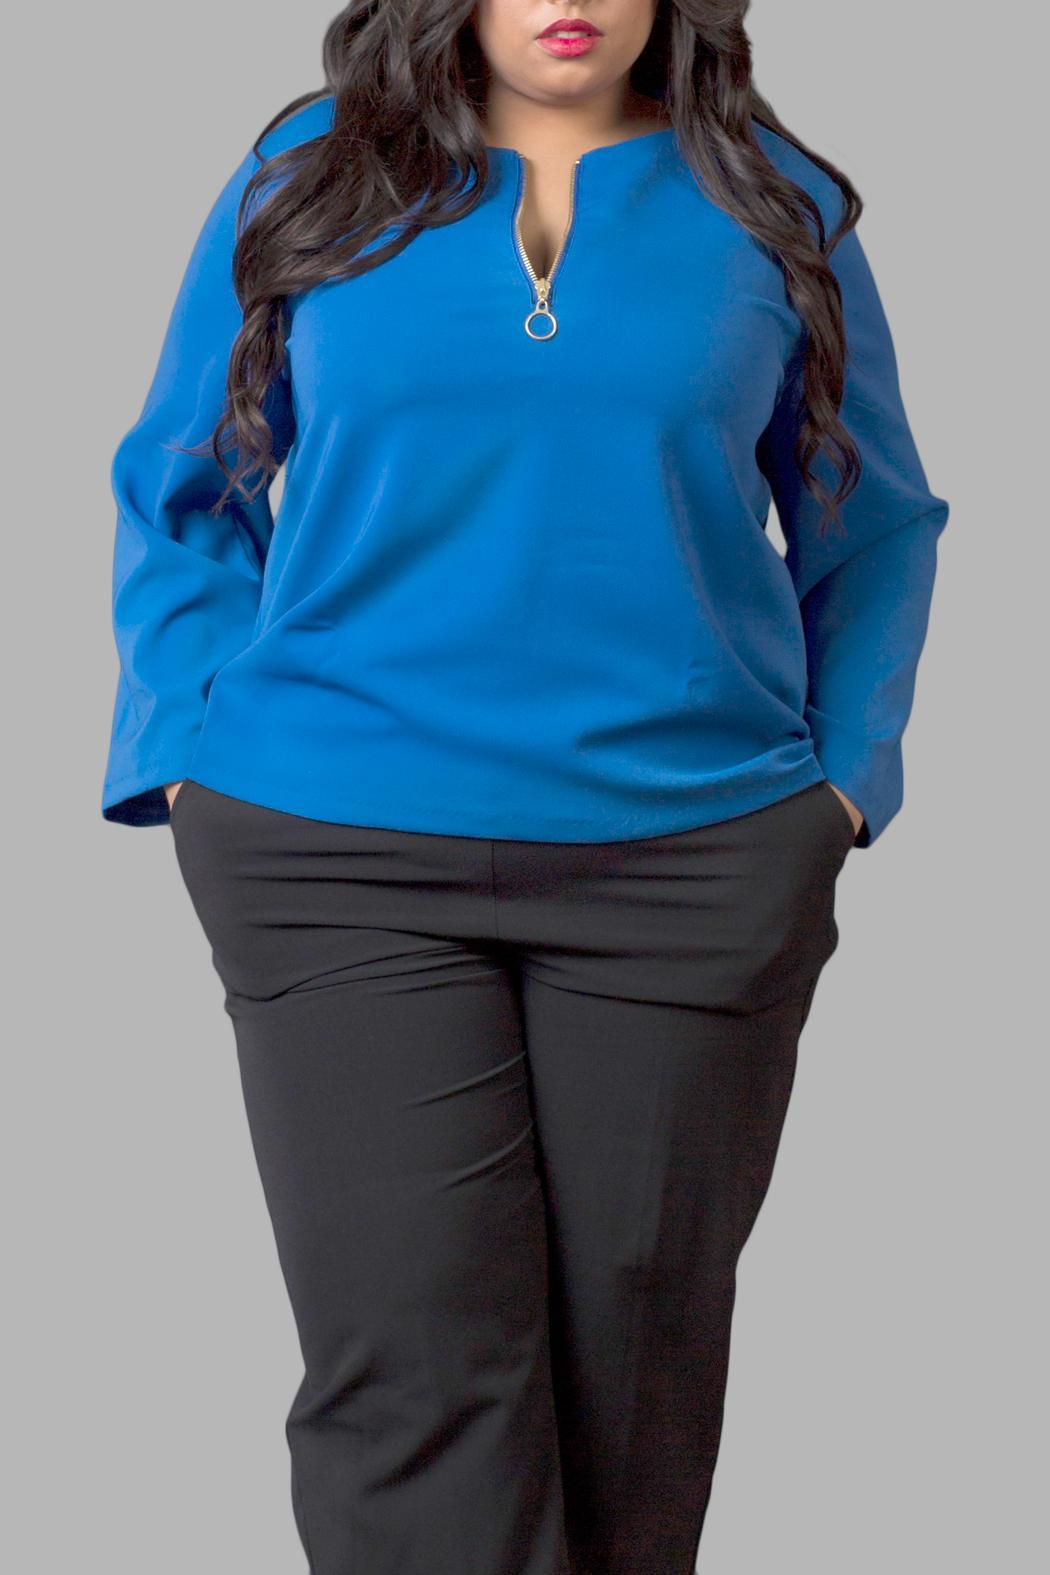 Yona New York Blue Long Sleeve Top - Main Image